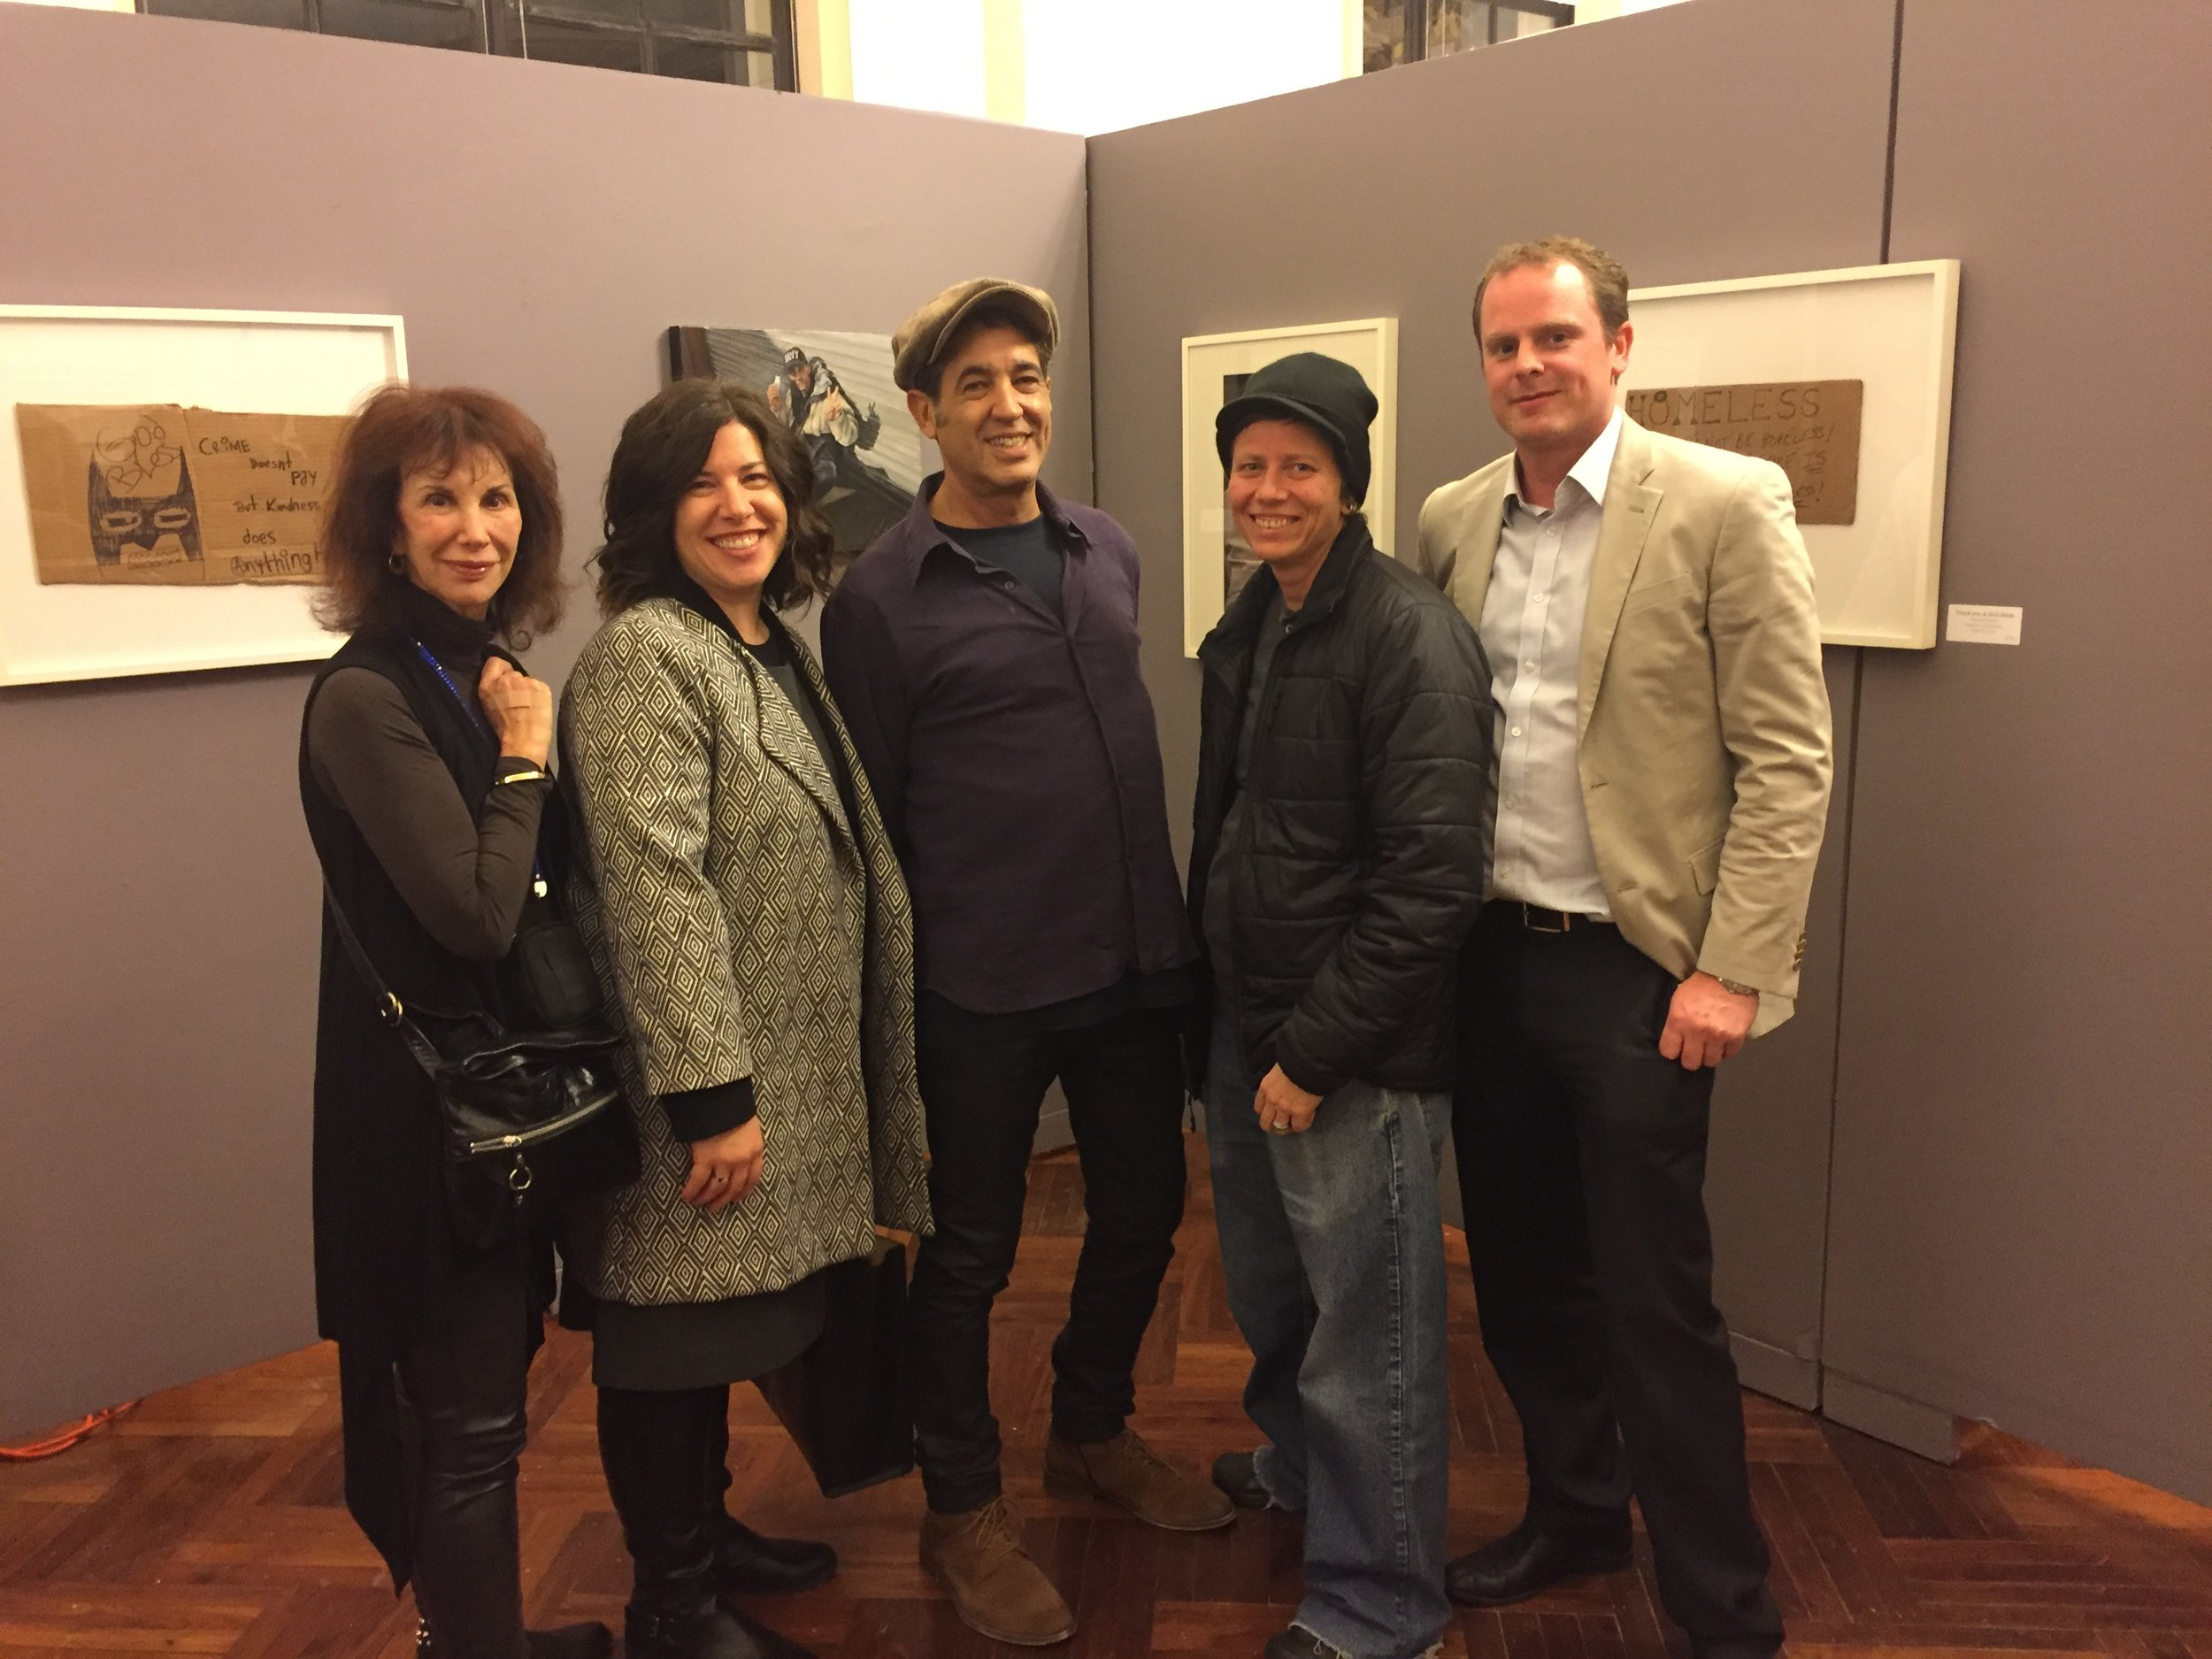 Artist & YPAB member Chris Brown gathered artists to put on an NHHAW-centric exhibit to raise awareness of our cause, which ran for three days at Legend Galleries